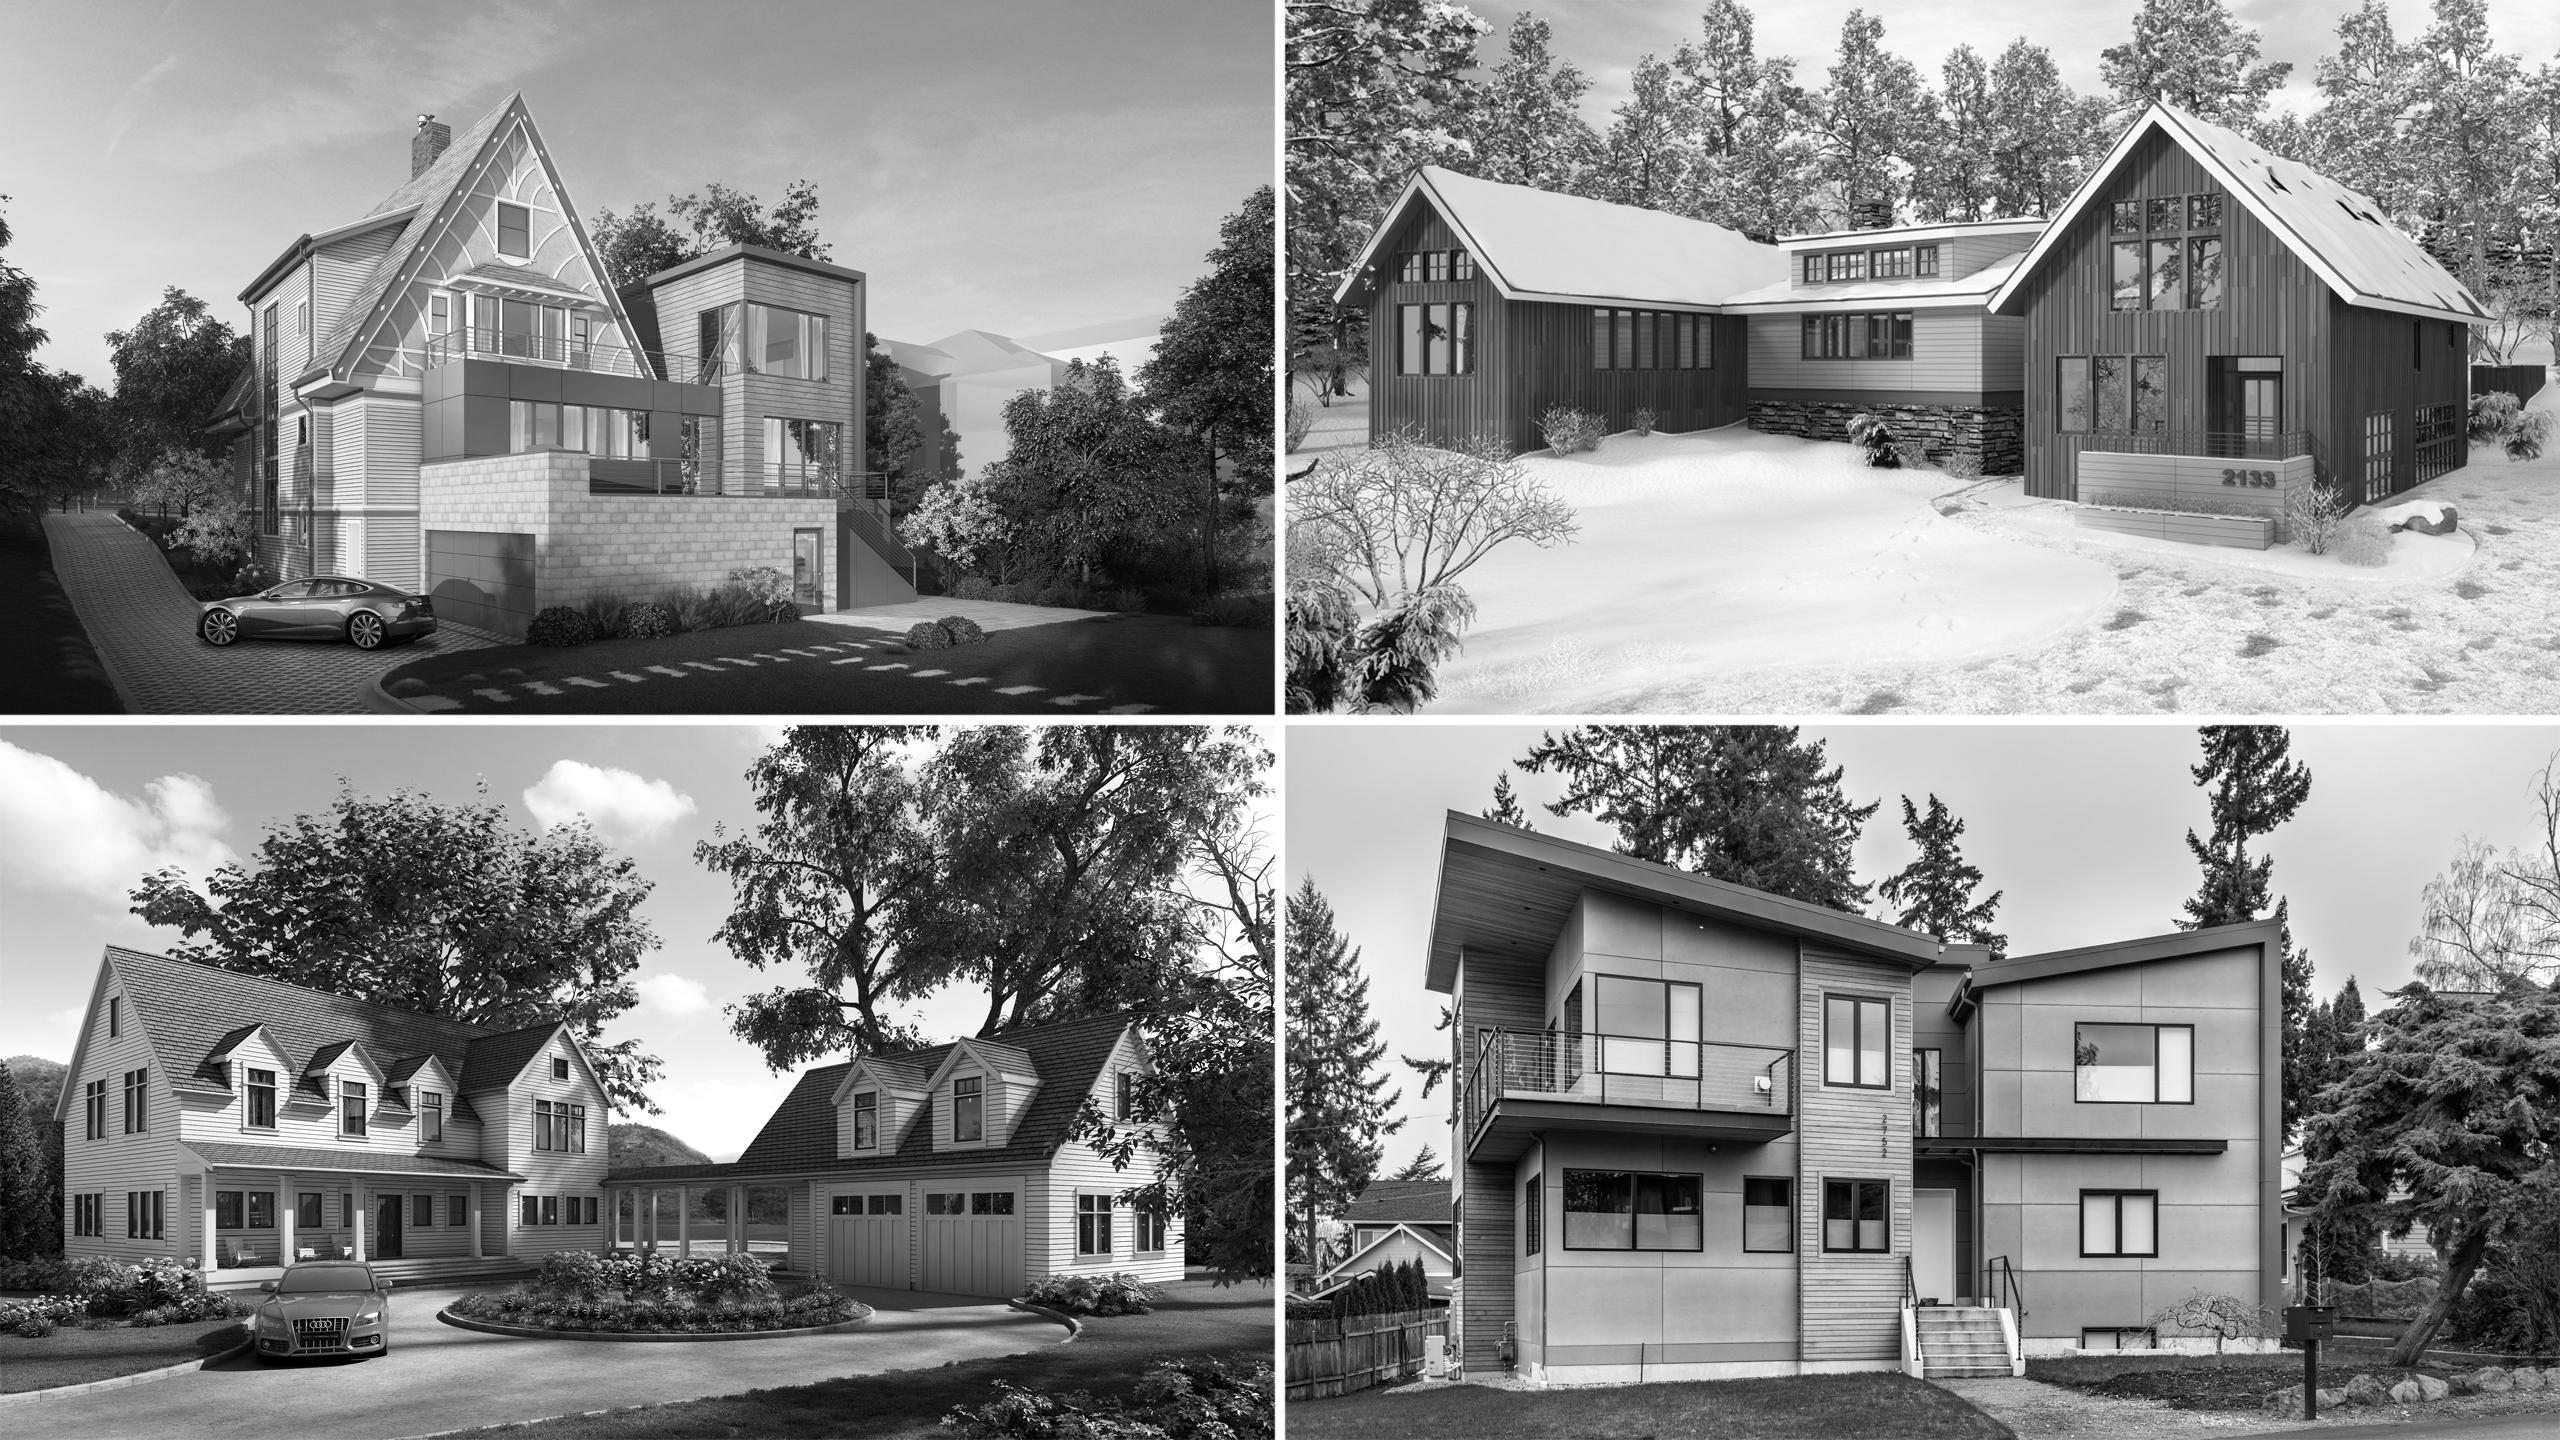 Should You Pick Your Architect Based on Style or Service? – Board & Vellum Designs in Many Styles to Suit the Context and Client